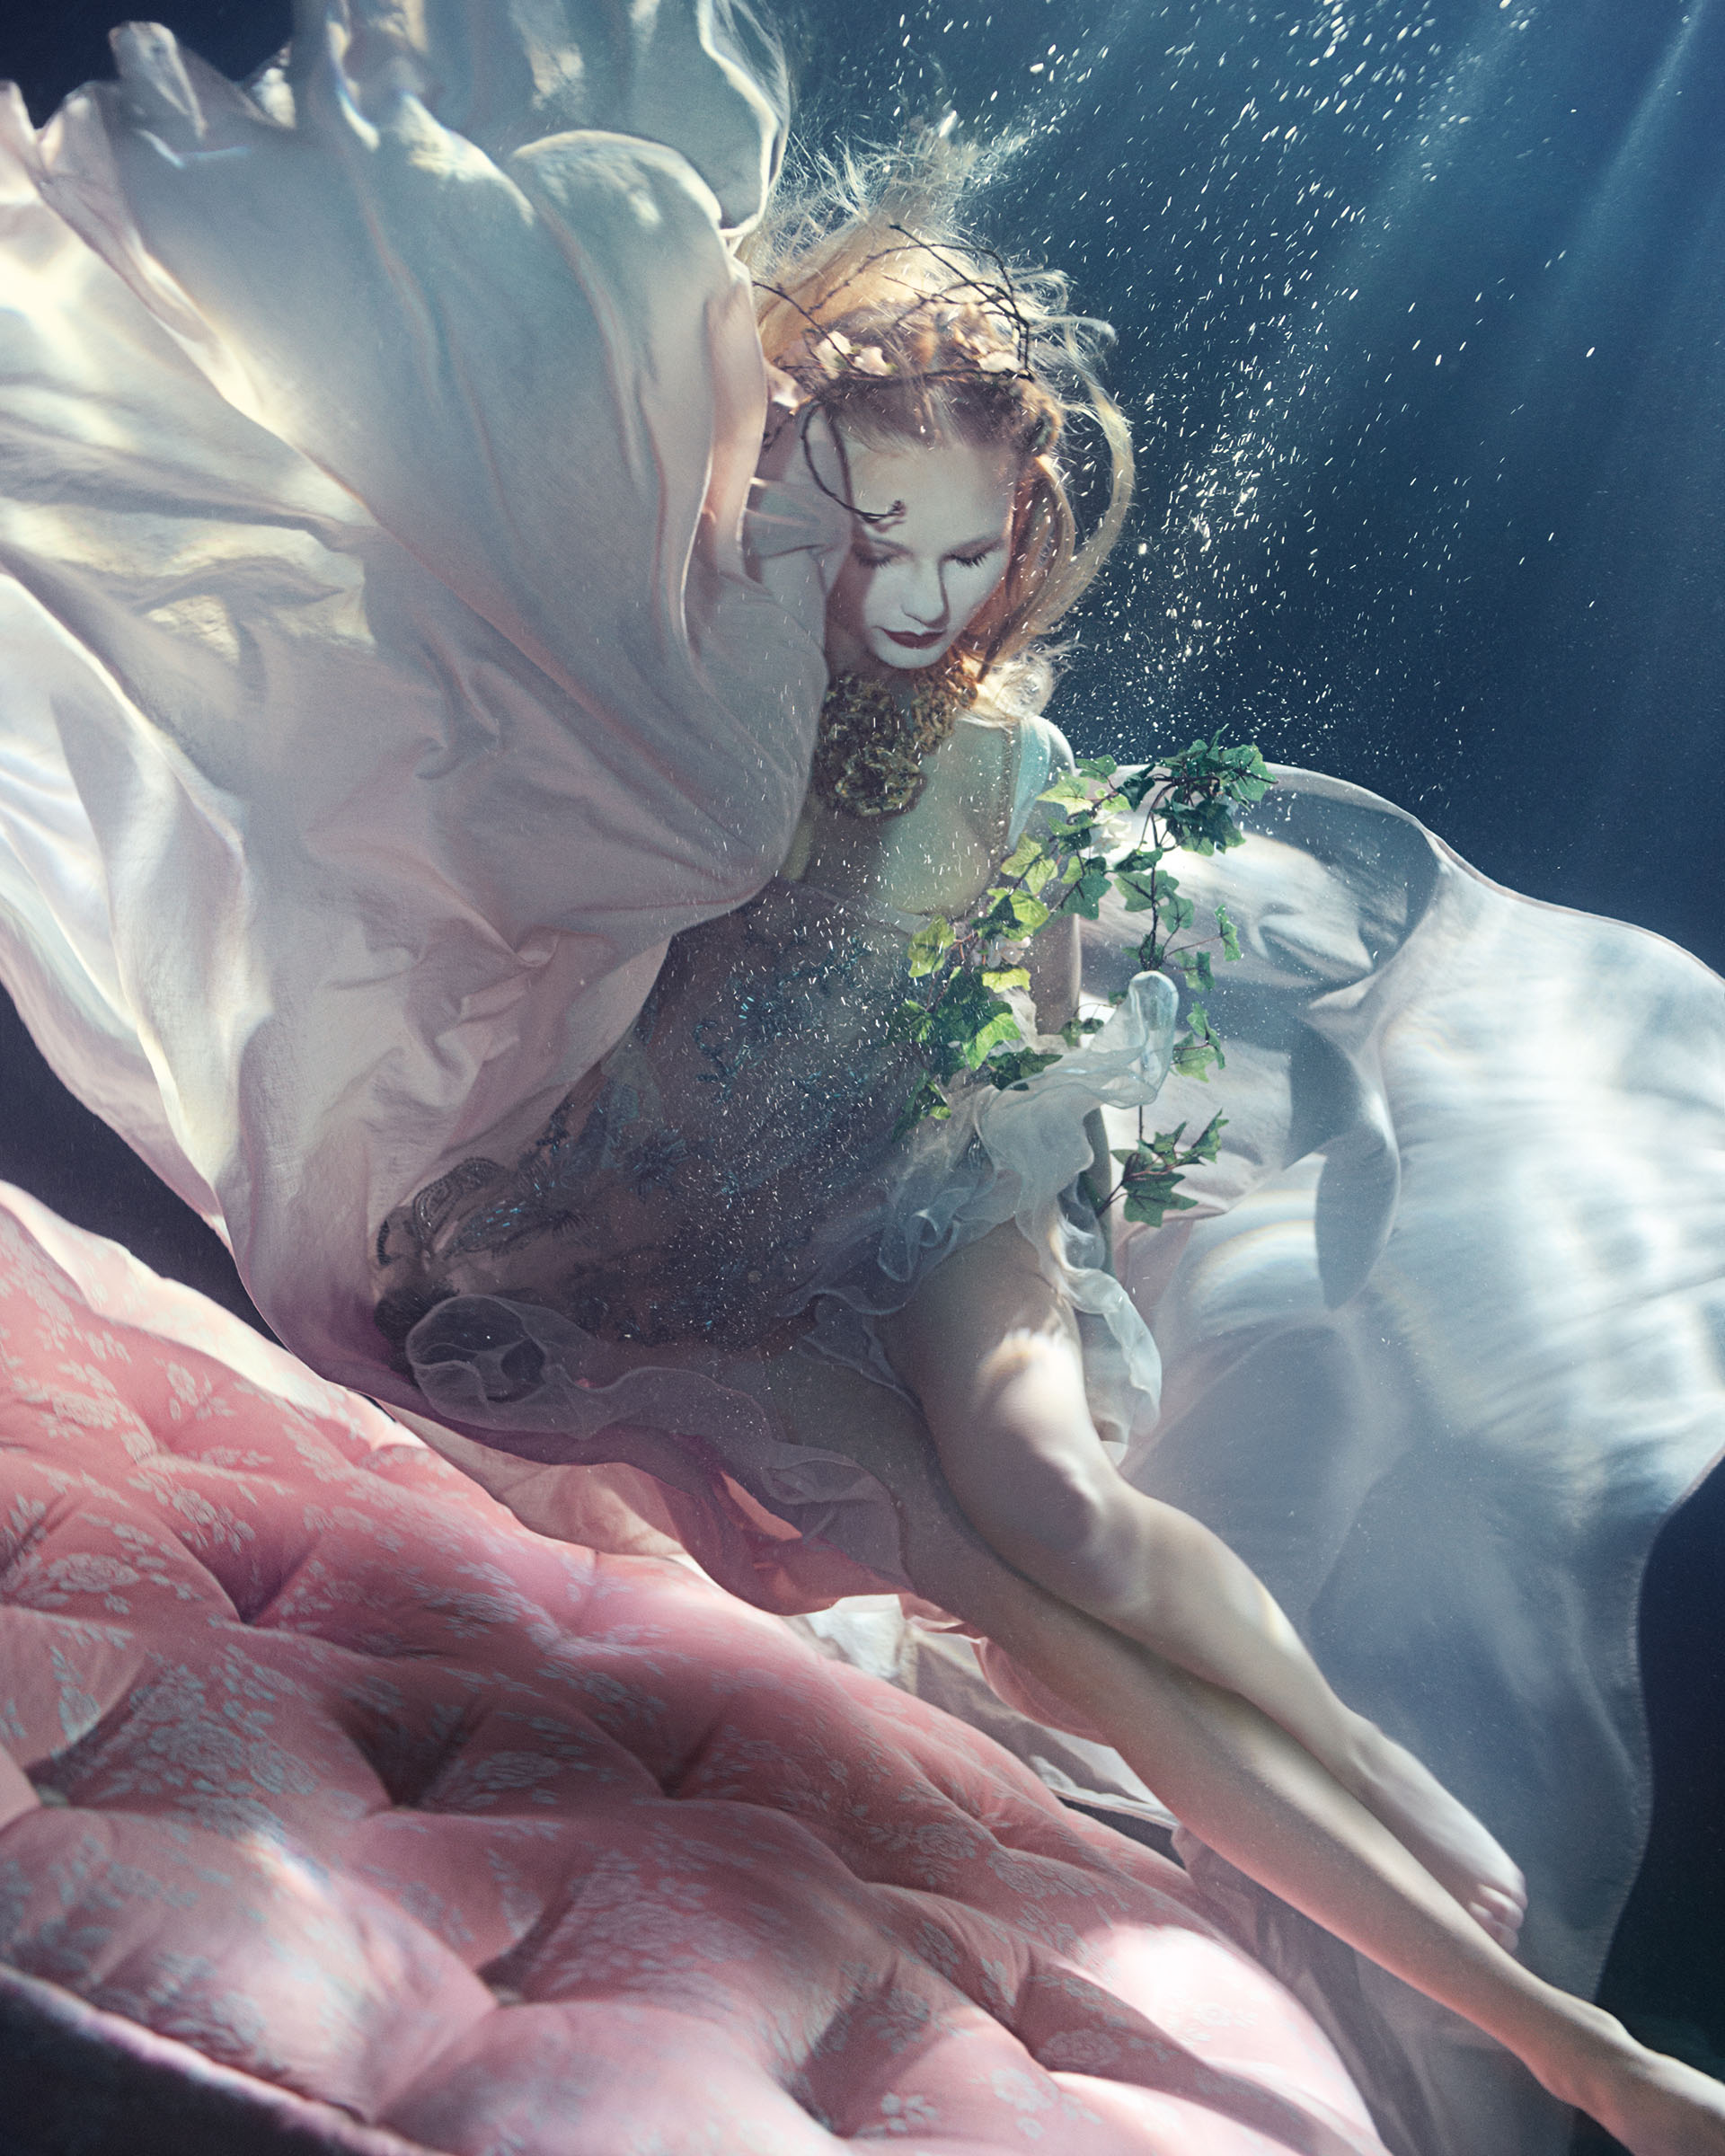 lydia-beesley-franziska-klein-by-zena-holloway-for-how-to-spend-it-may-2014-1